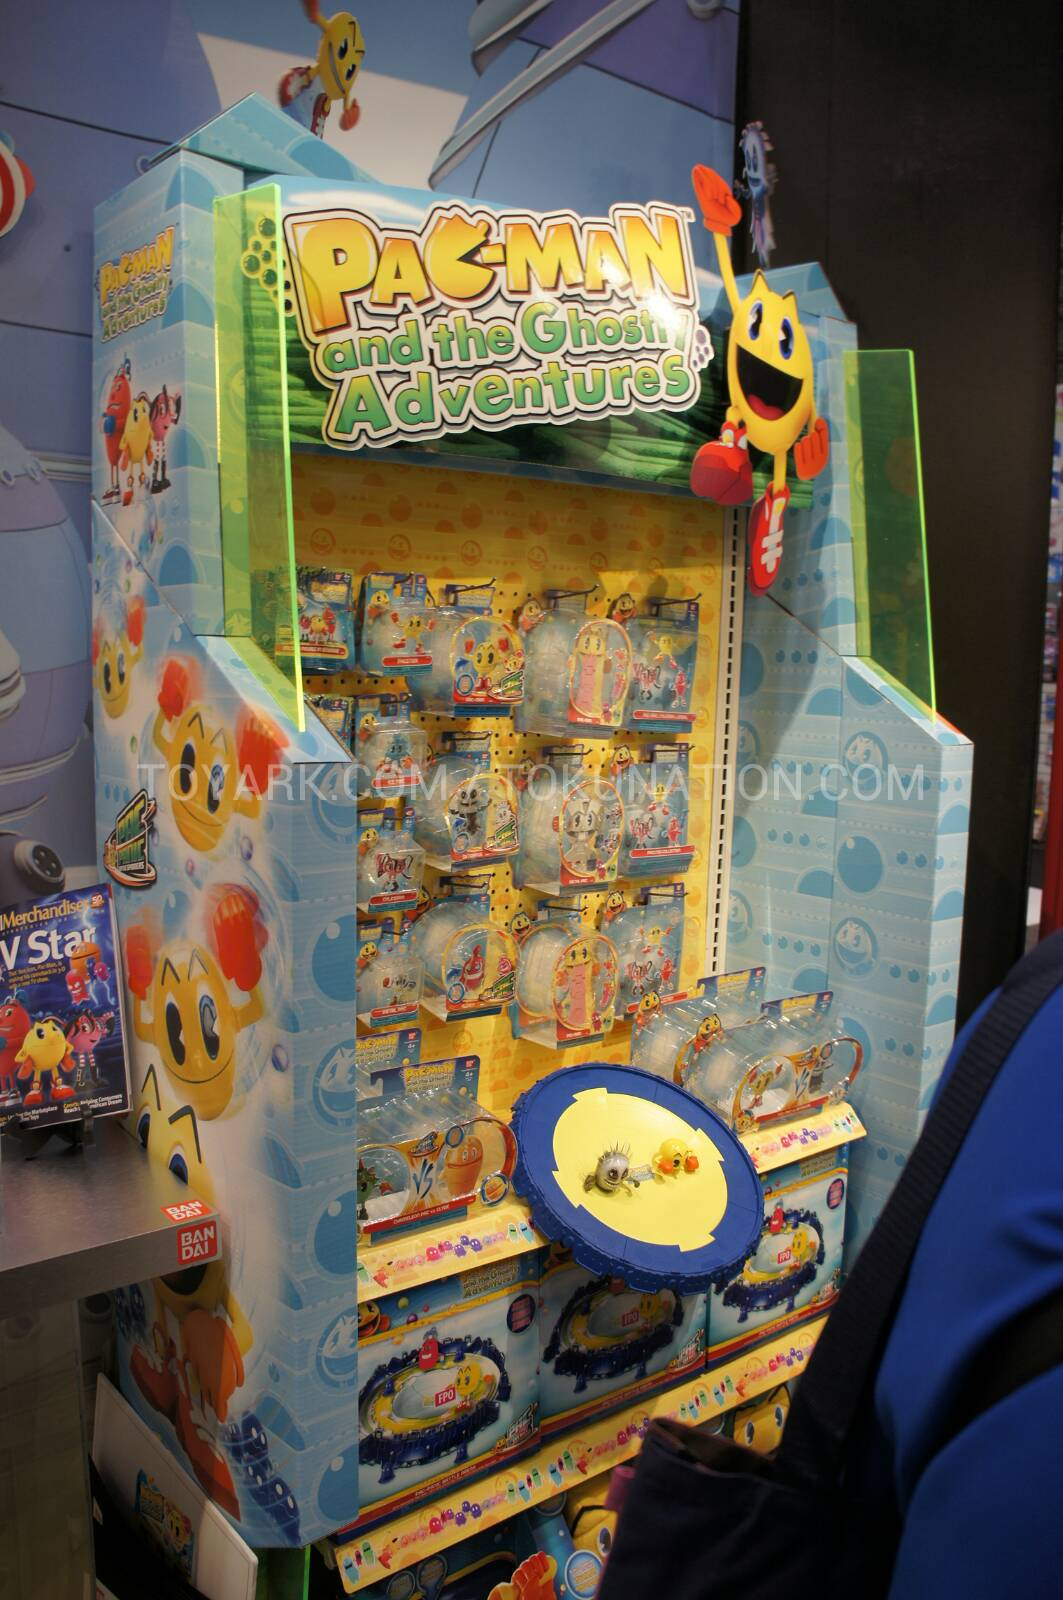 Toys And Adventures : Toy fair pac man and the ghostly adventures images